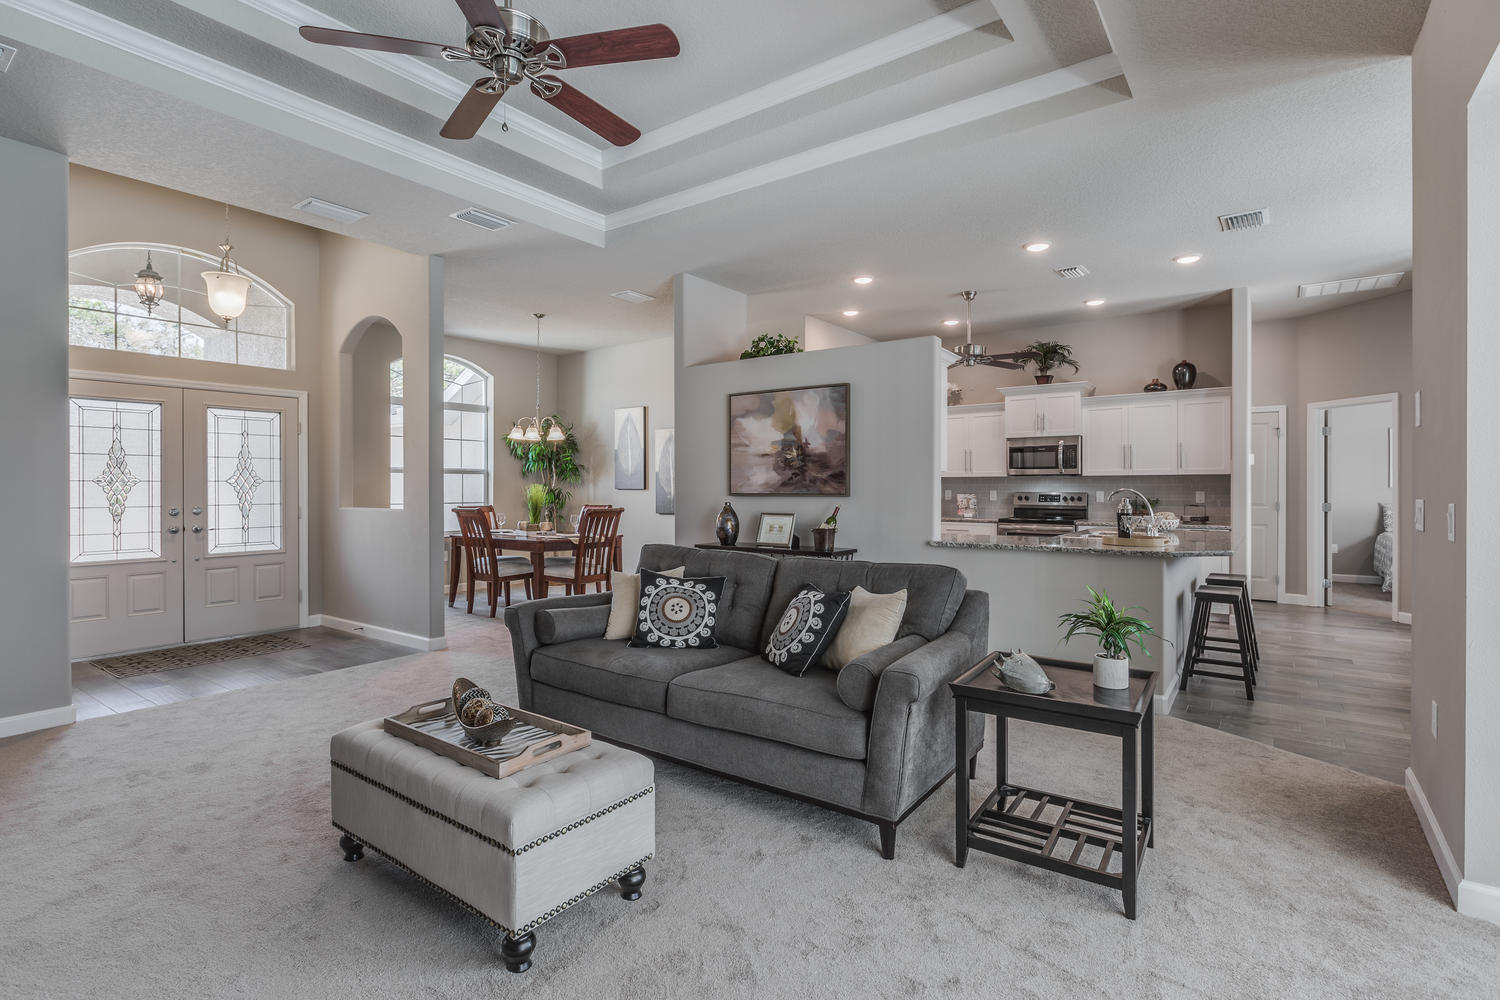 Chelsea Model Home Royal Coachman Homes Builder New Home